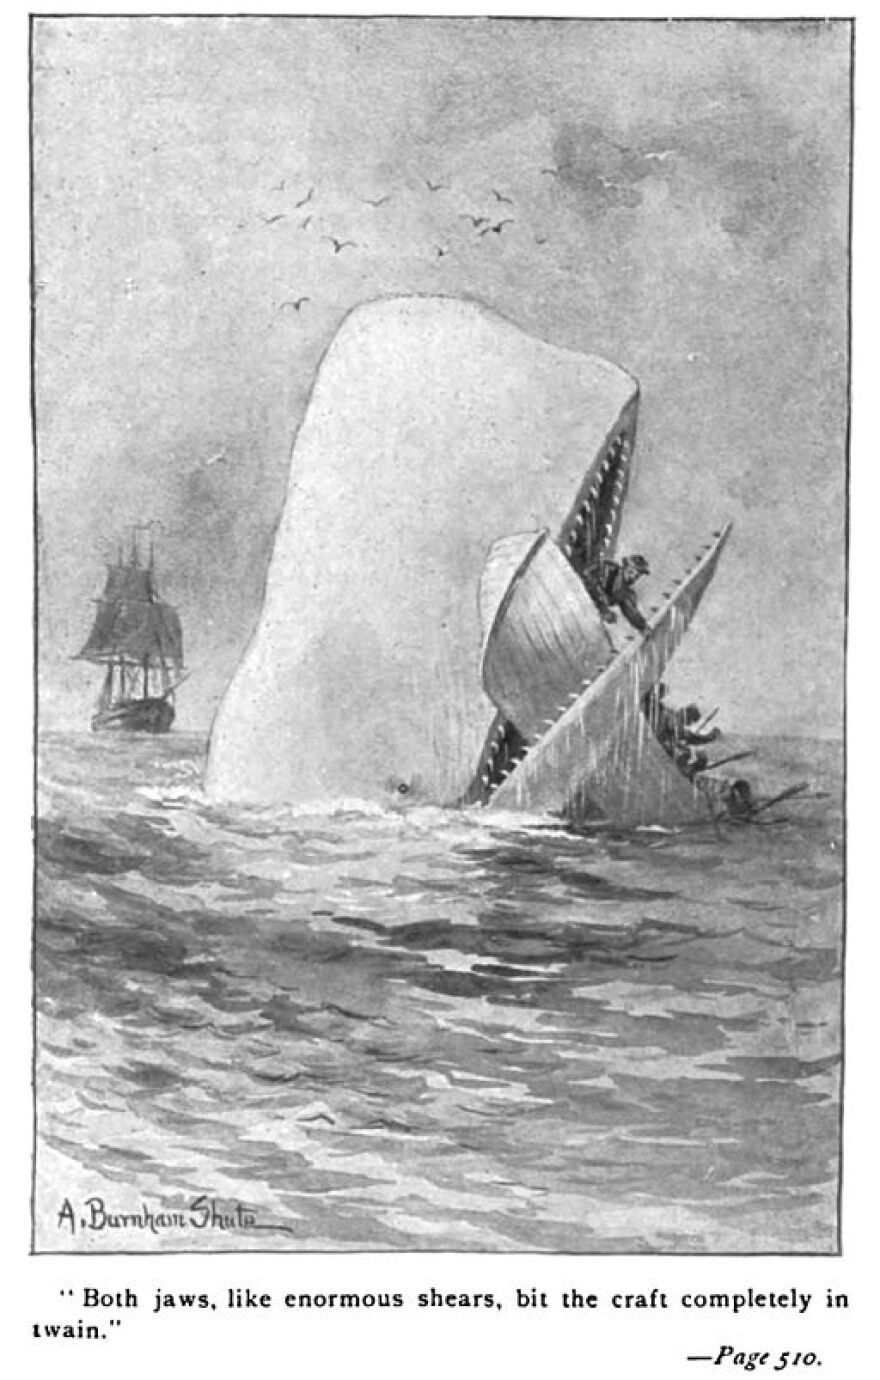 512px-Moby_Dick_p510_illustration.jpg